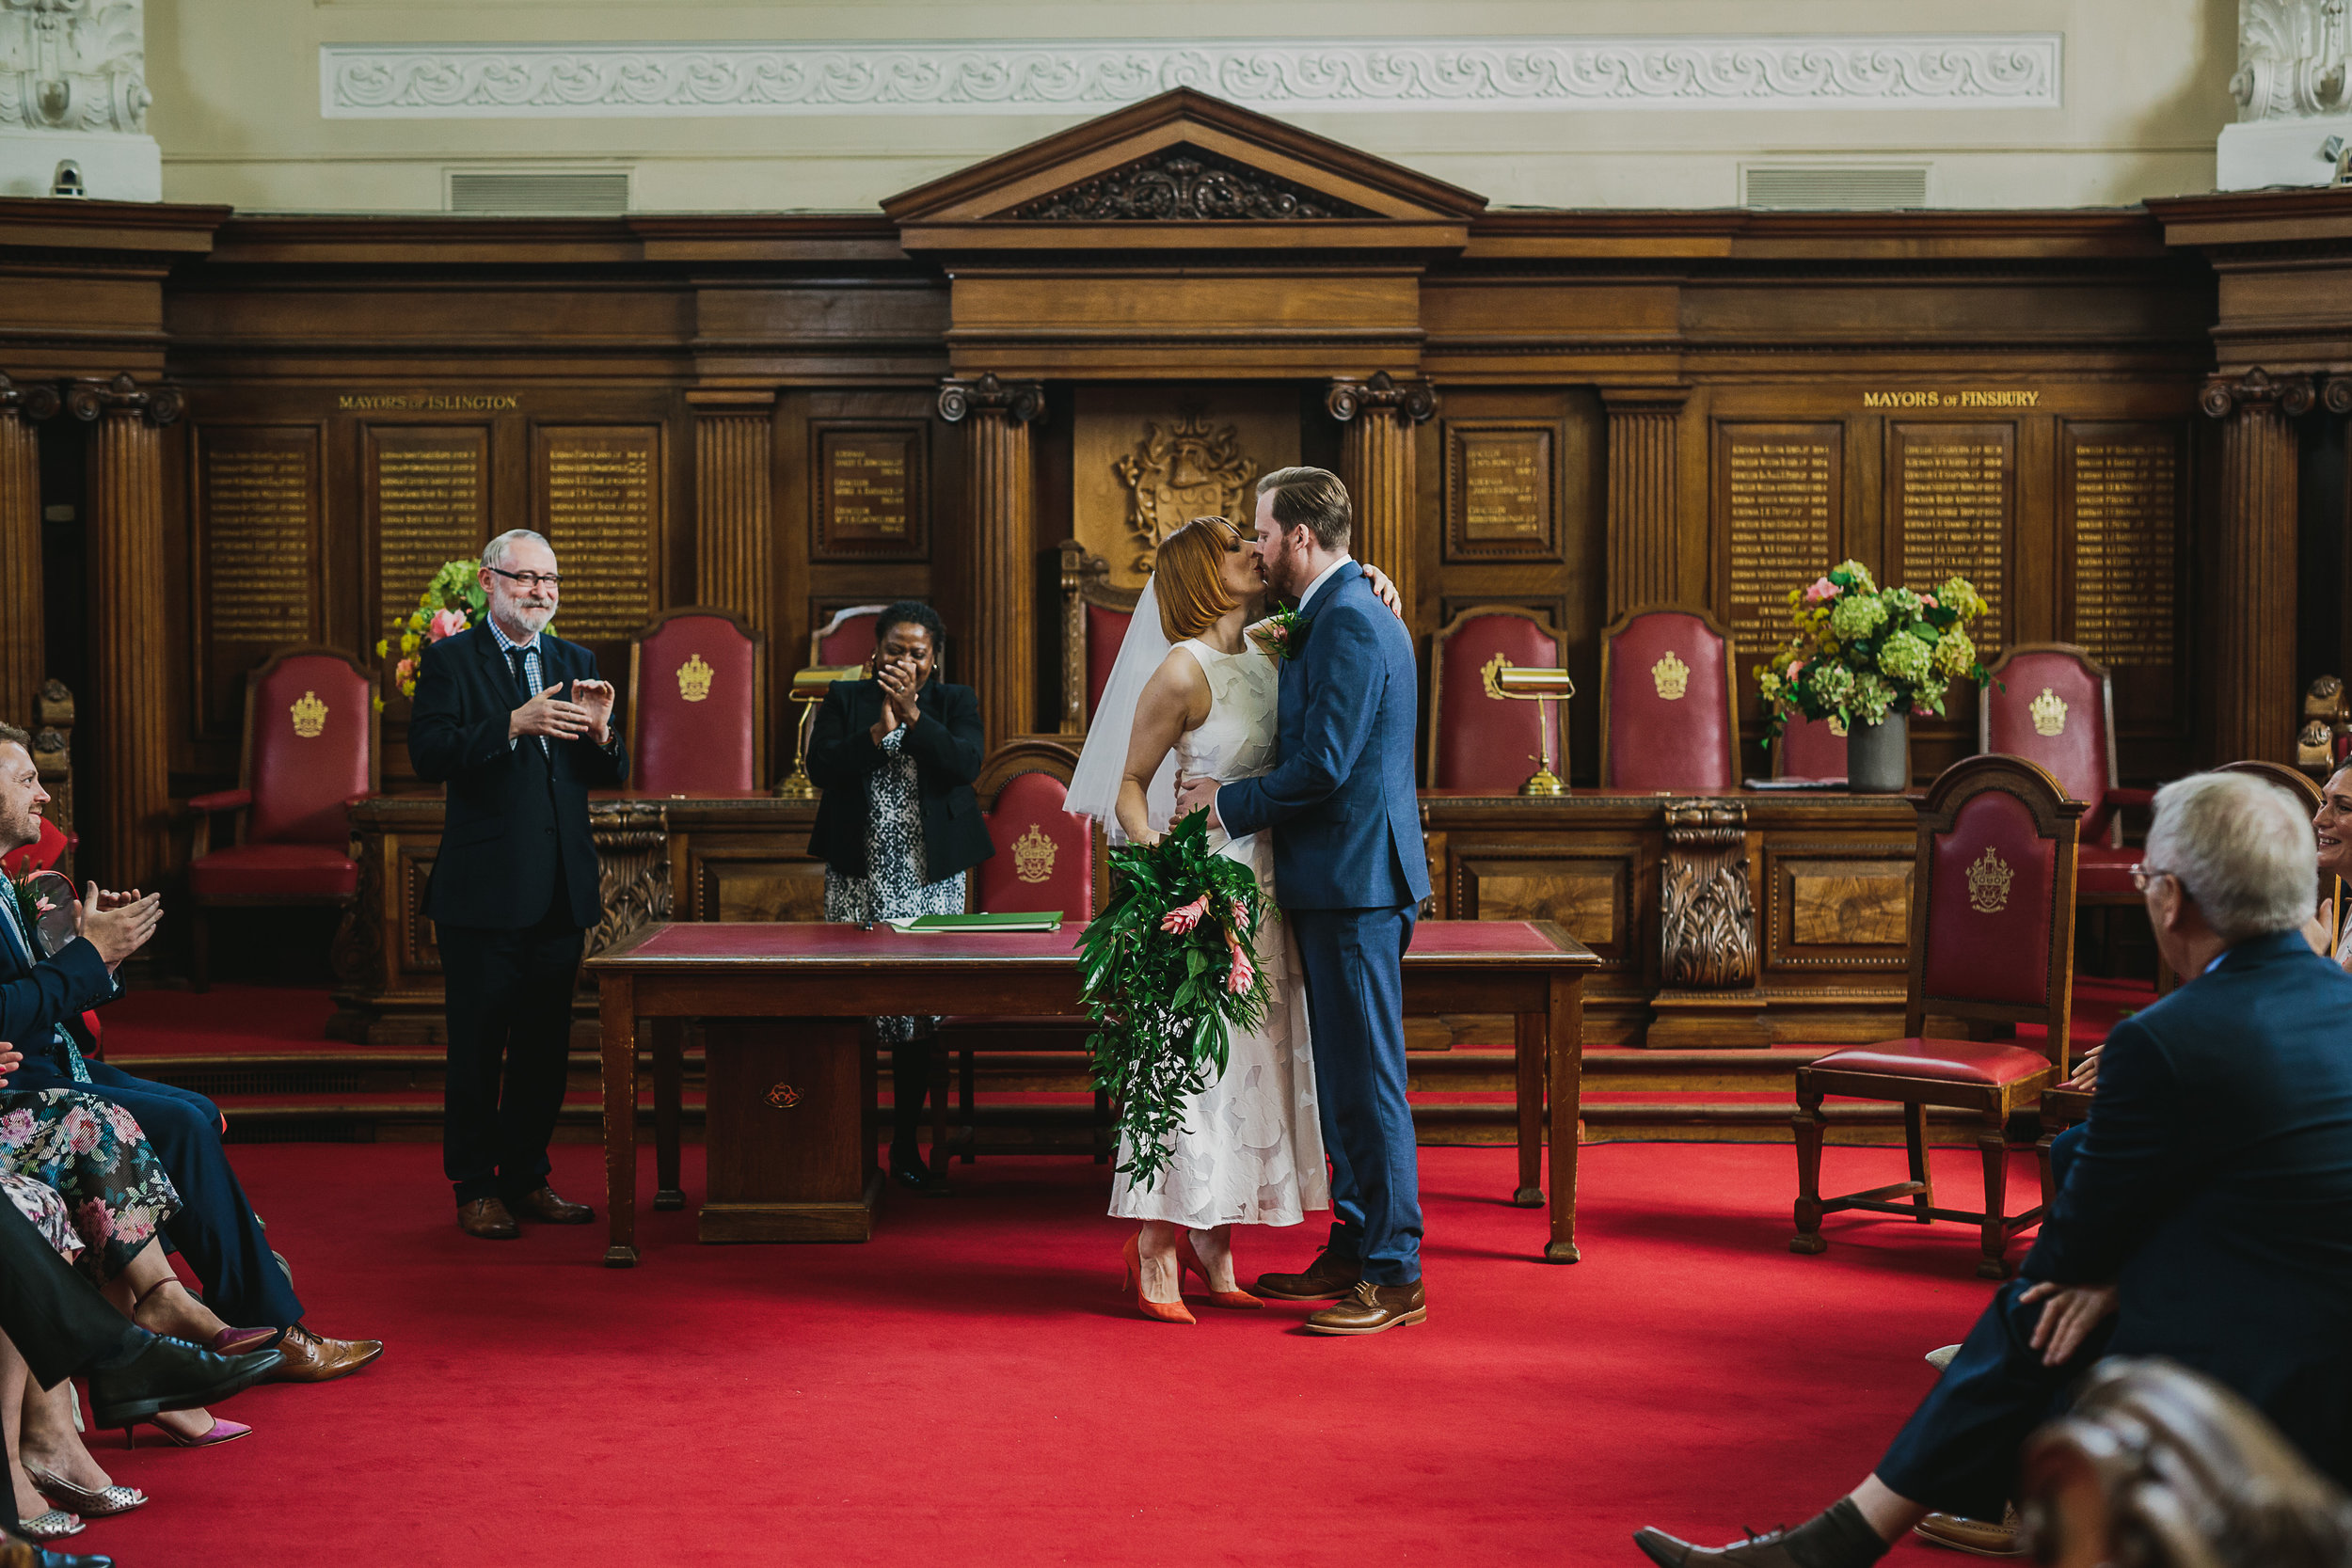 Islington_Town_Hall_Wedding_26.JPG